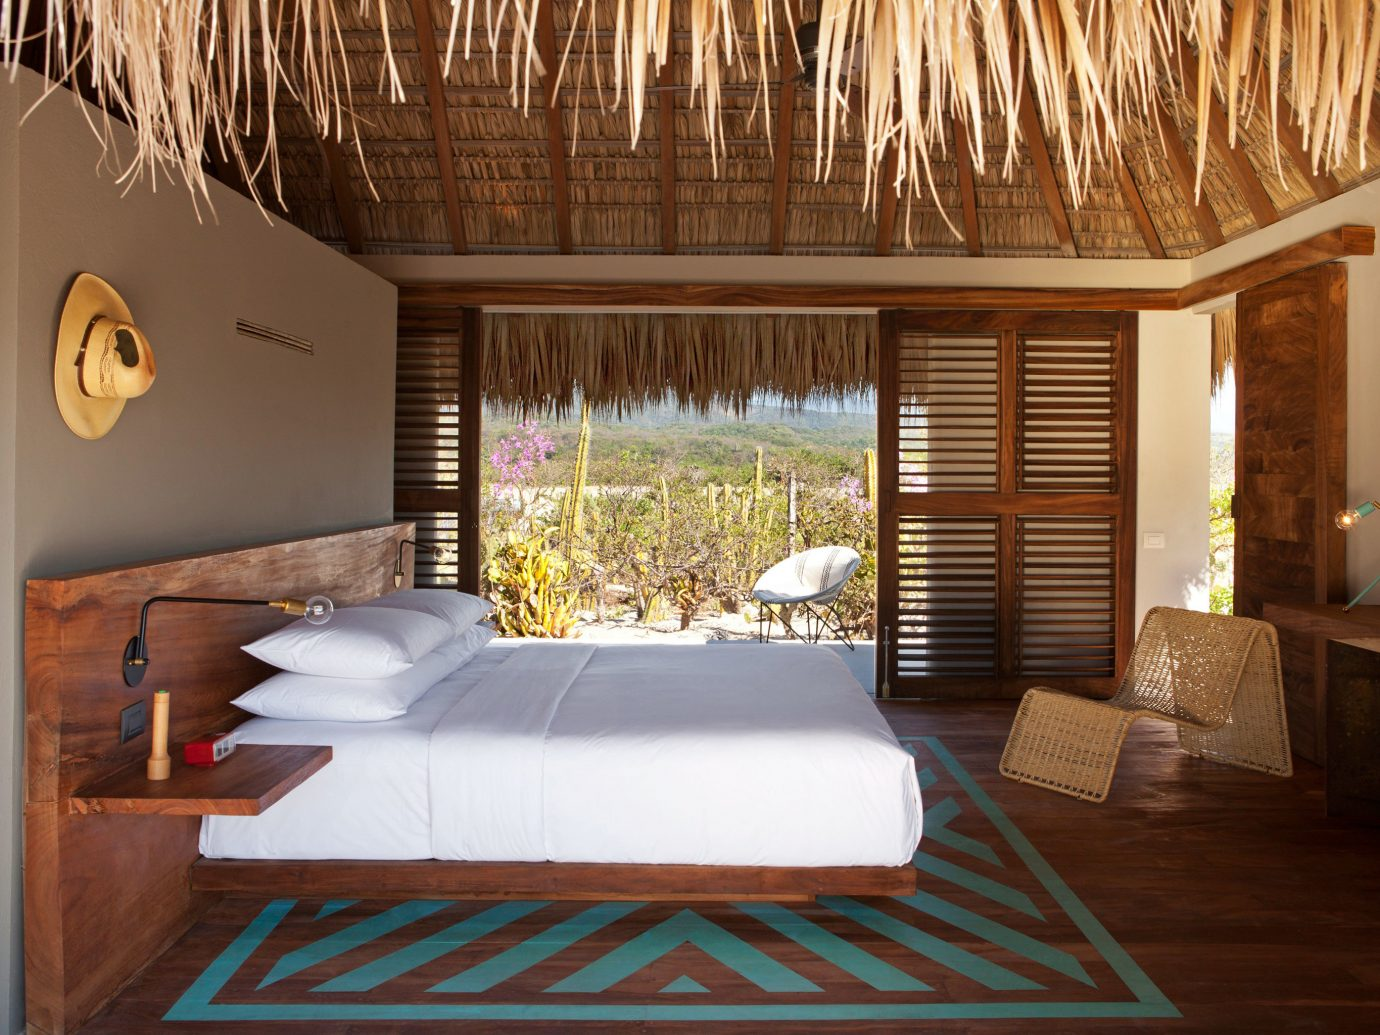 Bedroom at Hotel Escondido, Puerto Escondido, Mexico